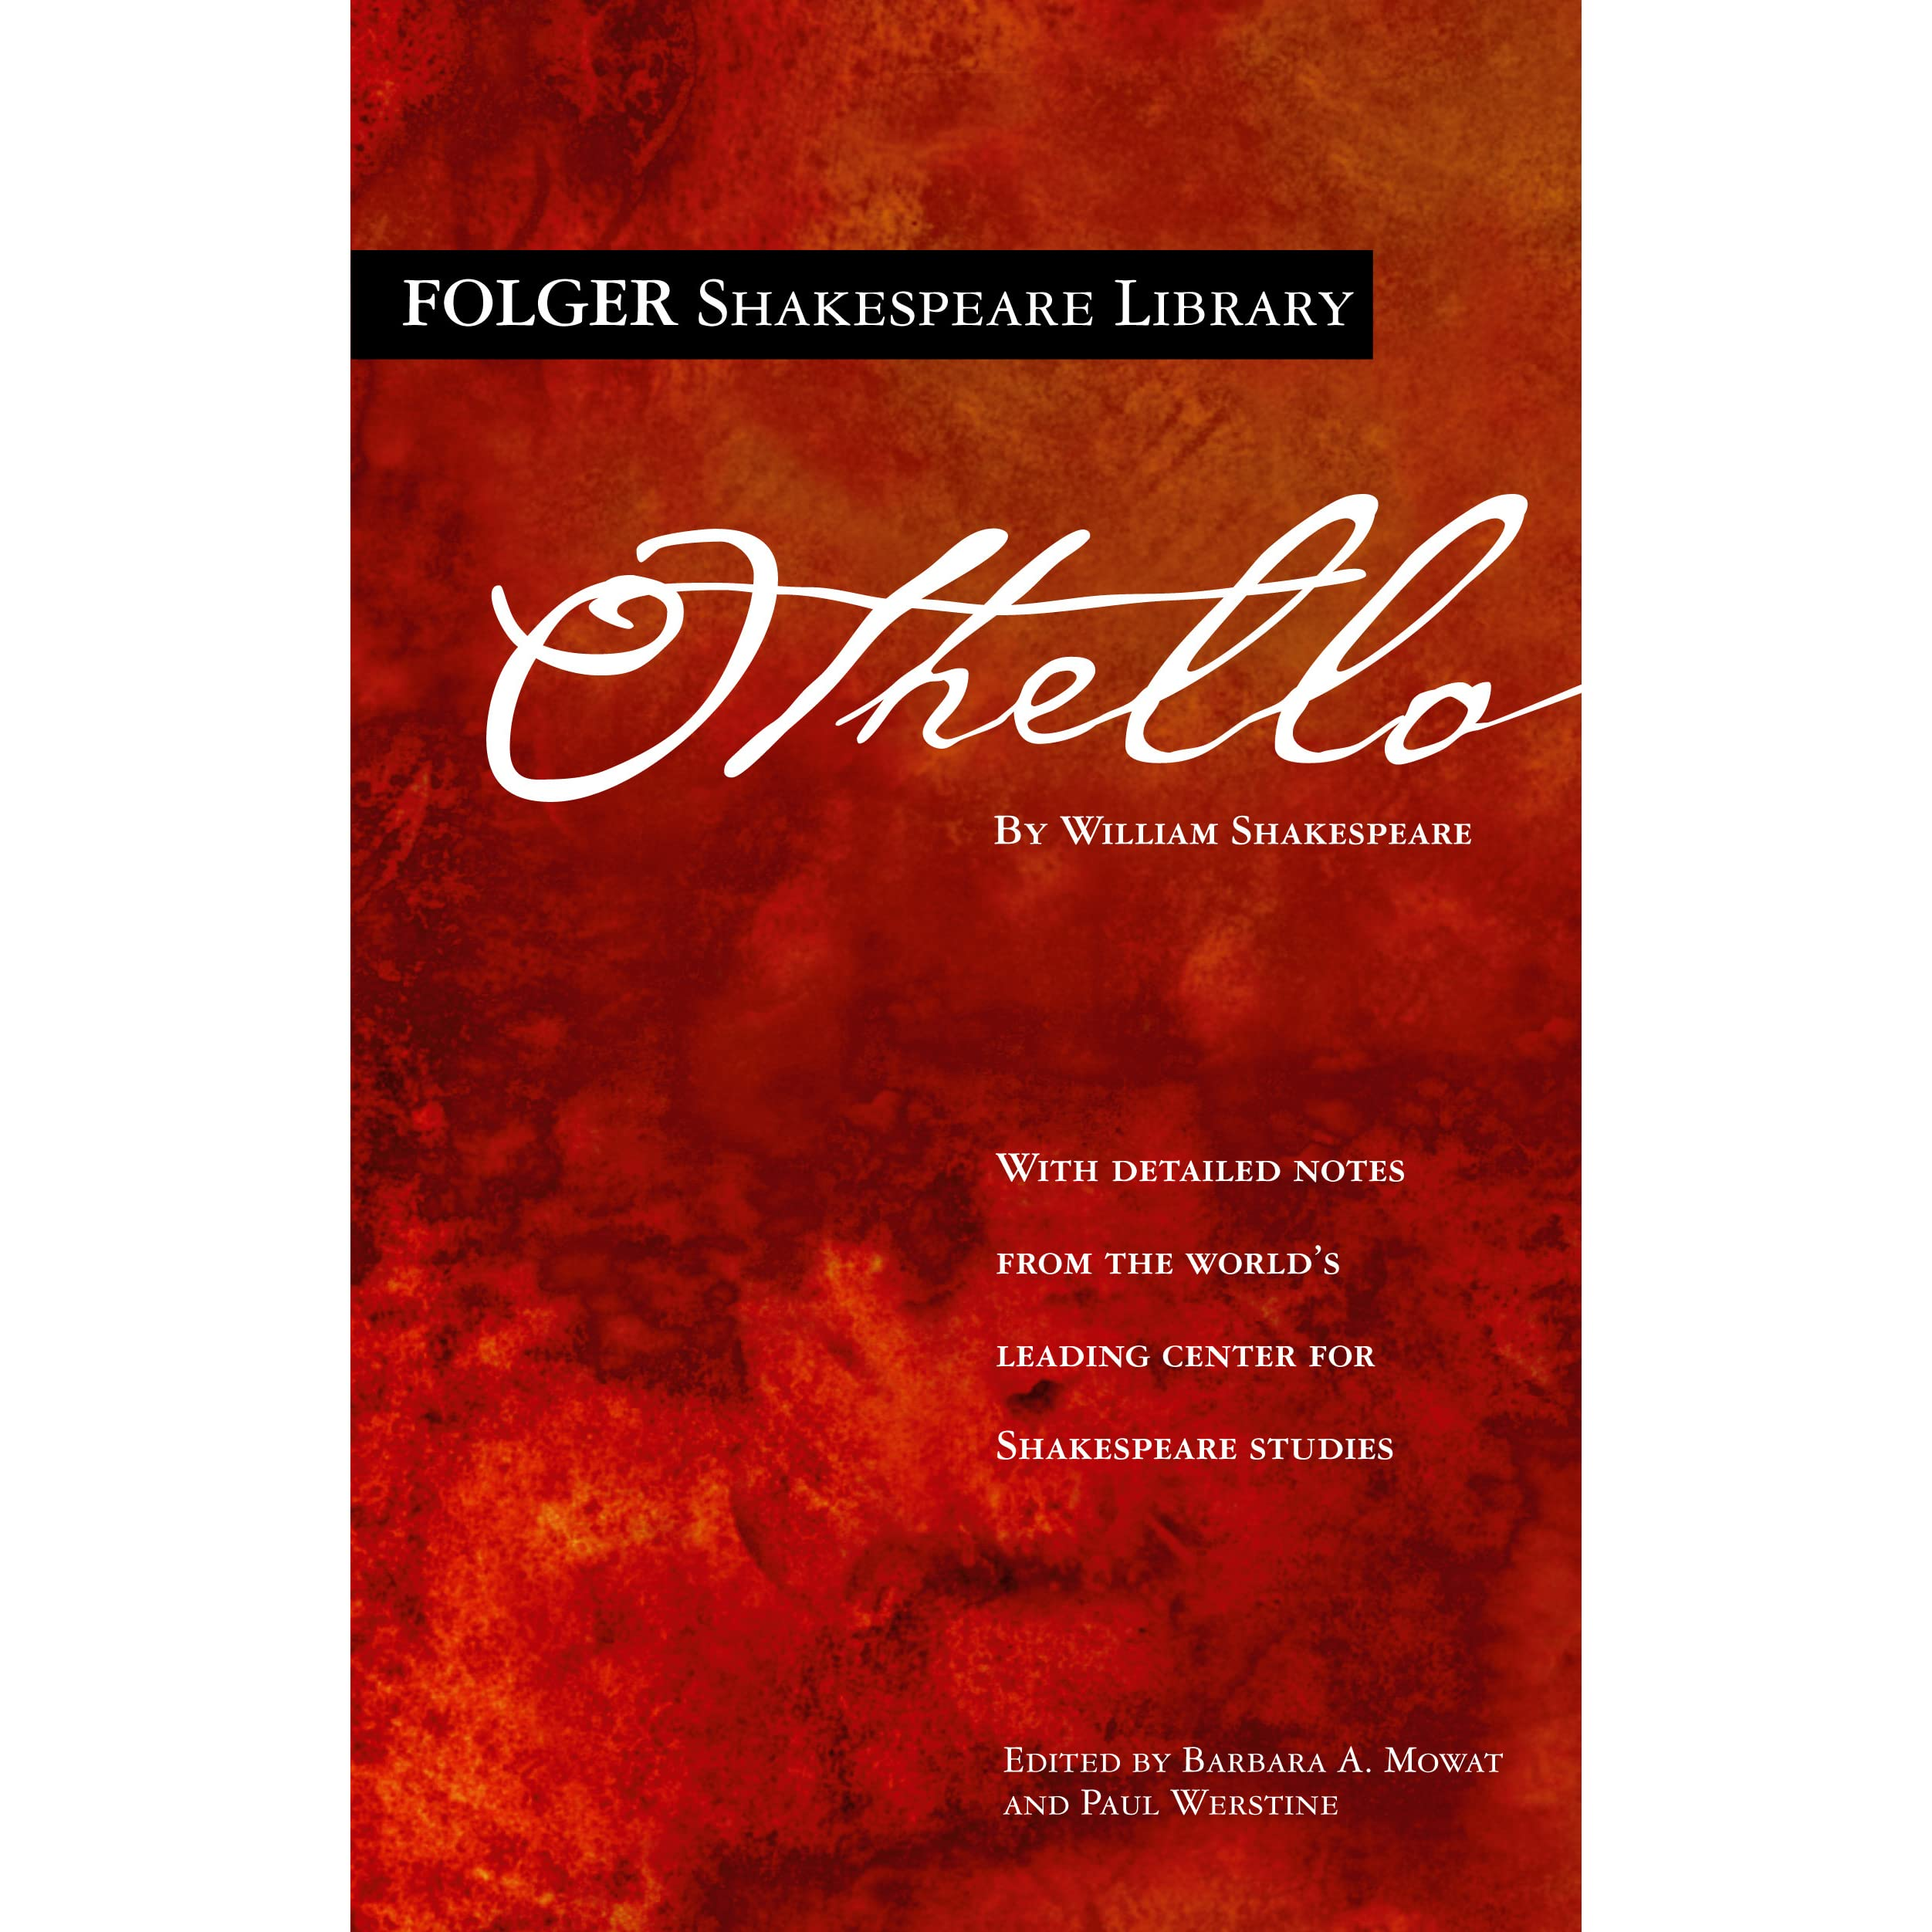 othello by william shakespeare reviews discussion bookclubs lists